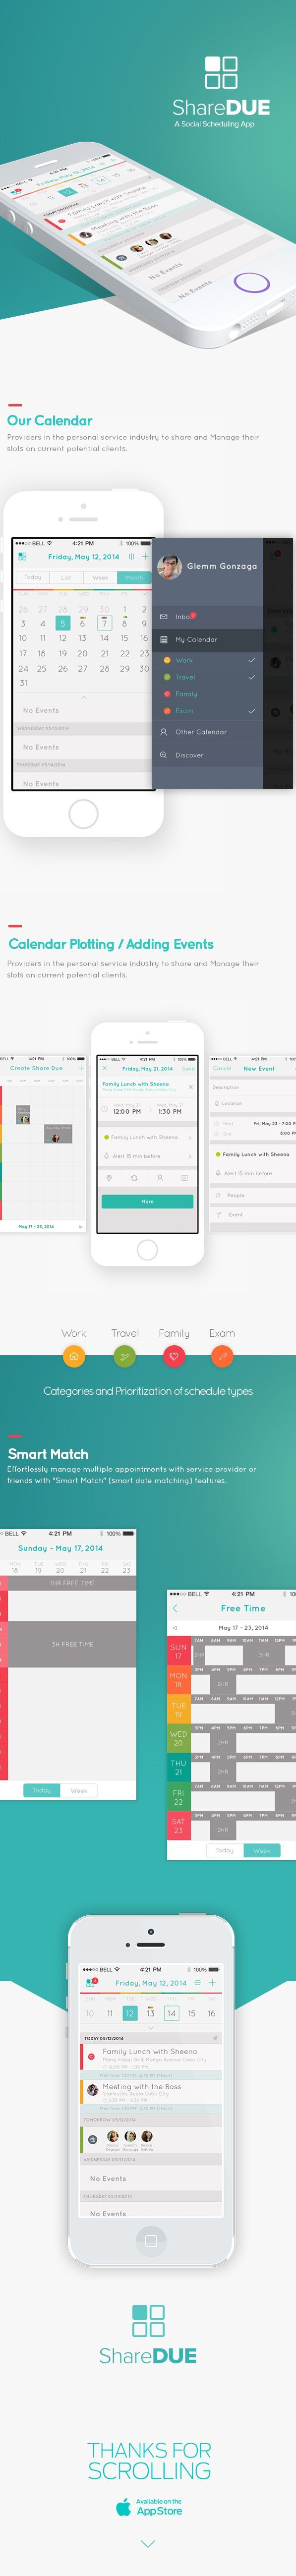 Share DUE your Social Scheduling App by Glemm Gonzaga, via Behance: